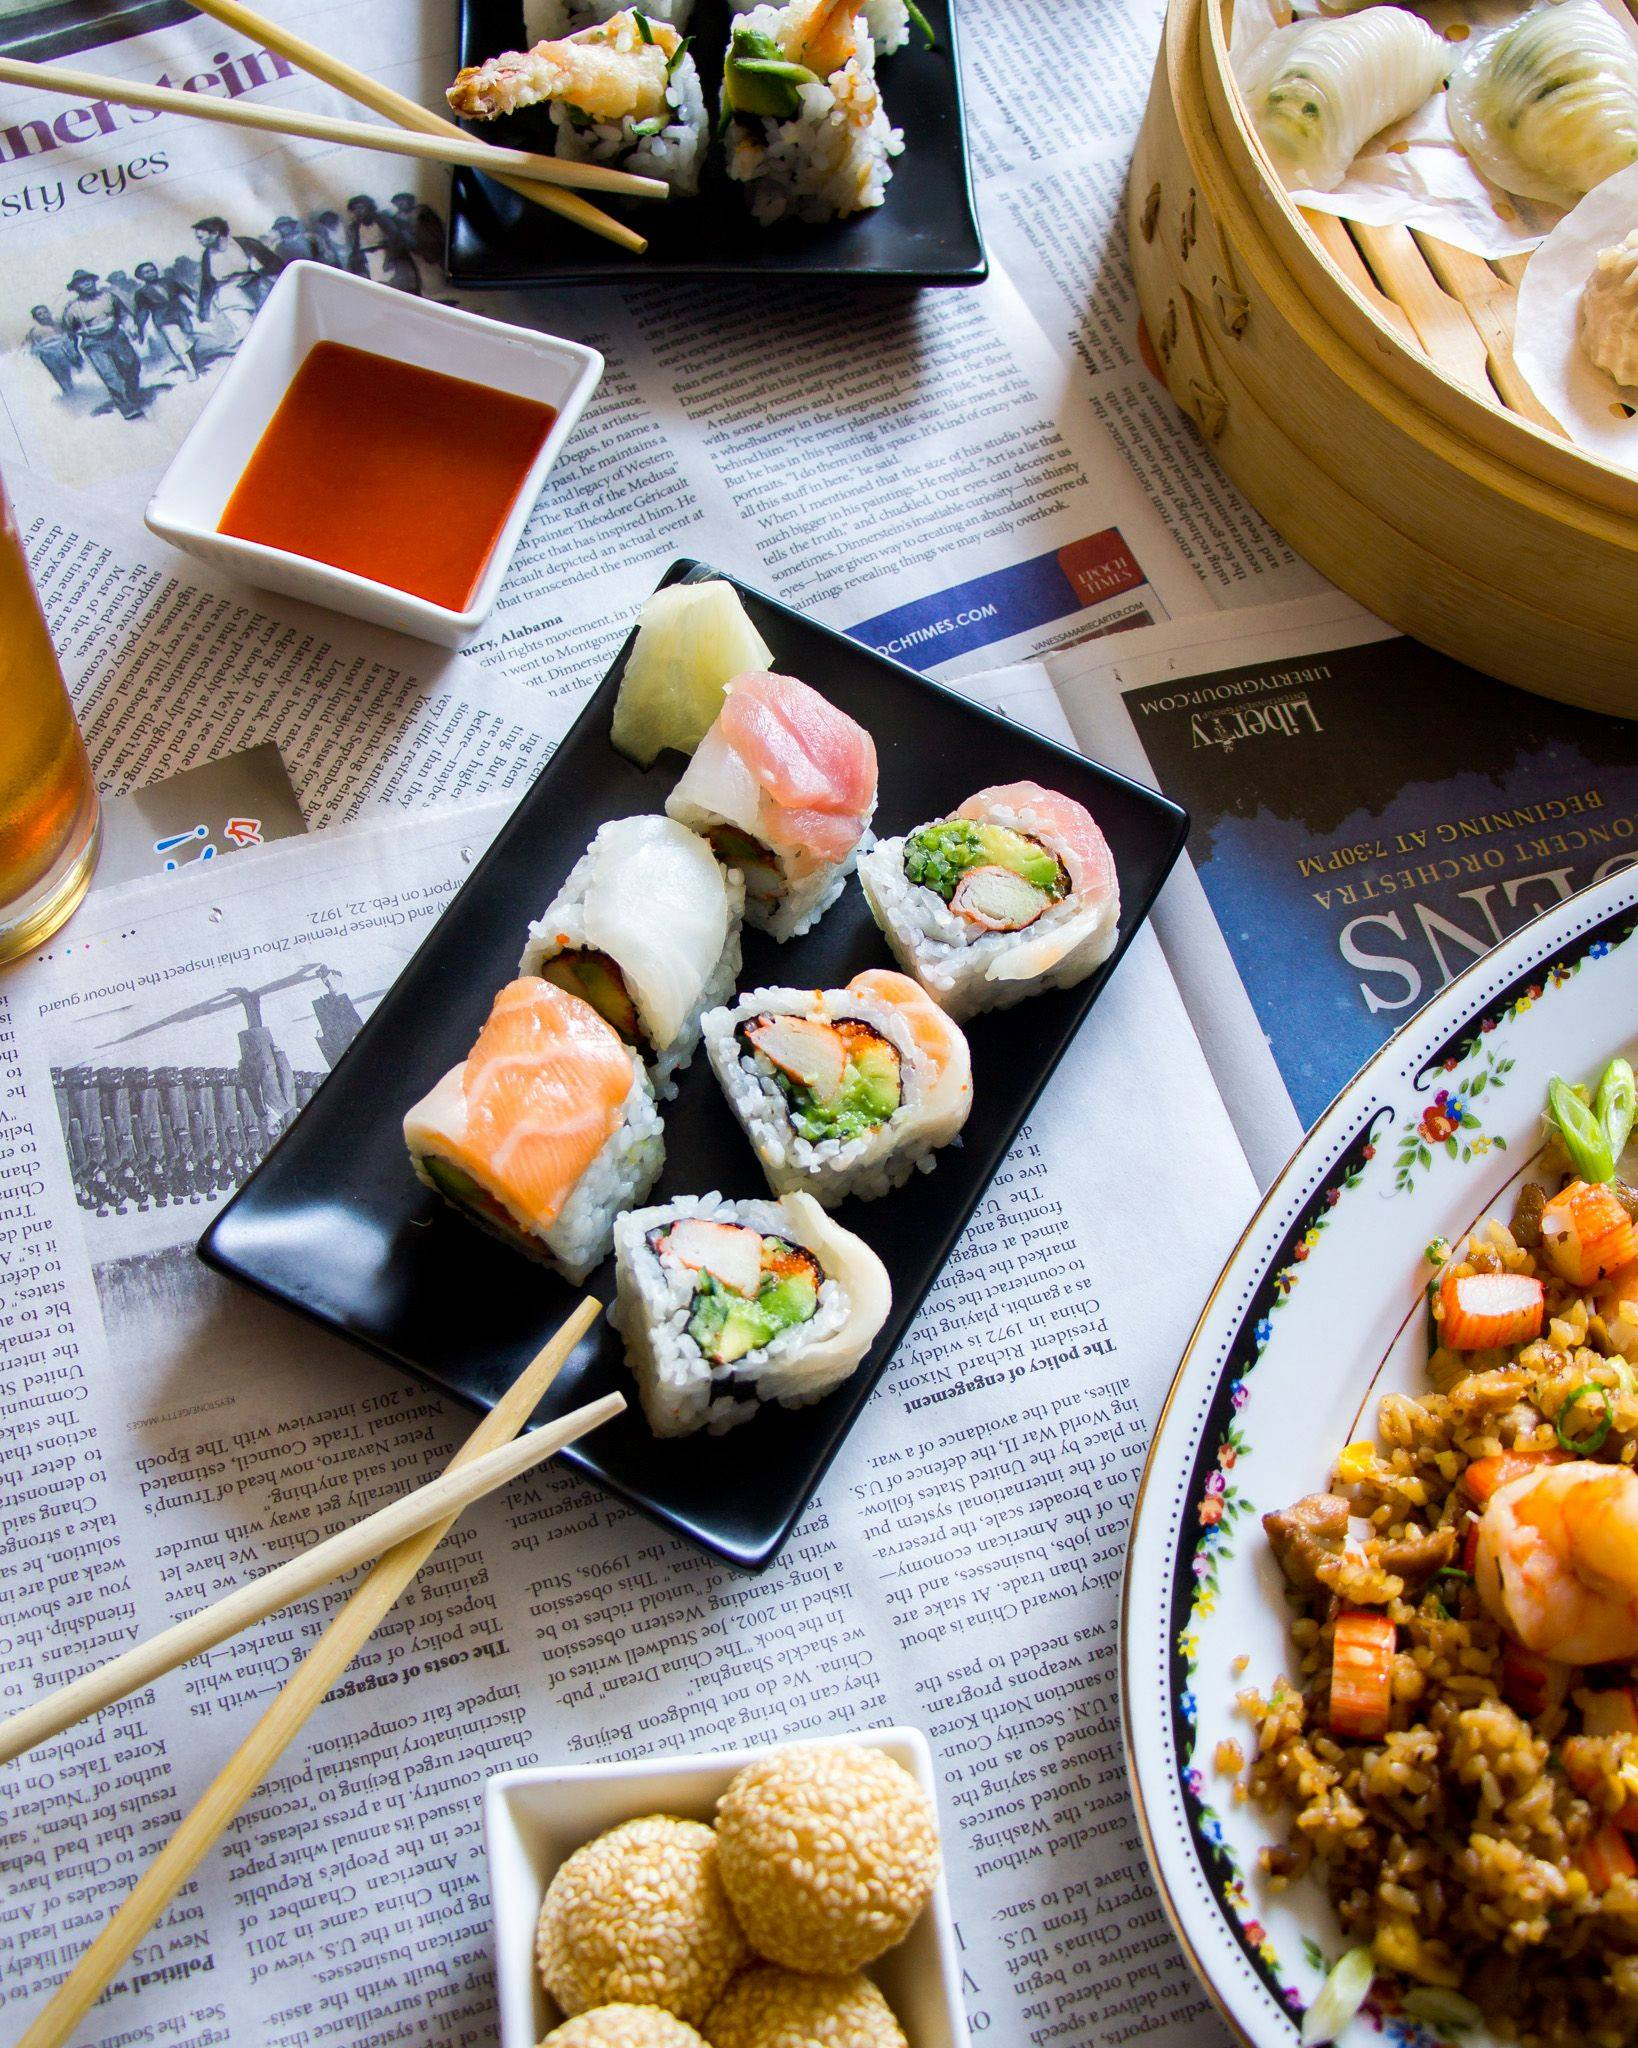 august 8 all-you-can-eat sushi dim sum